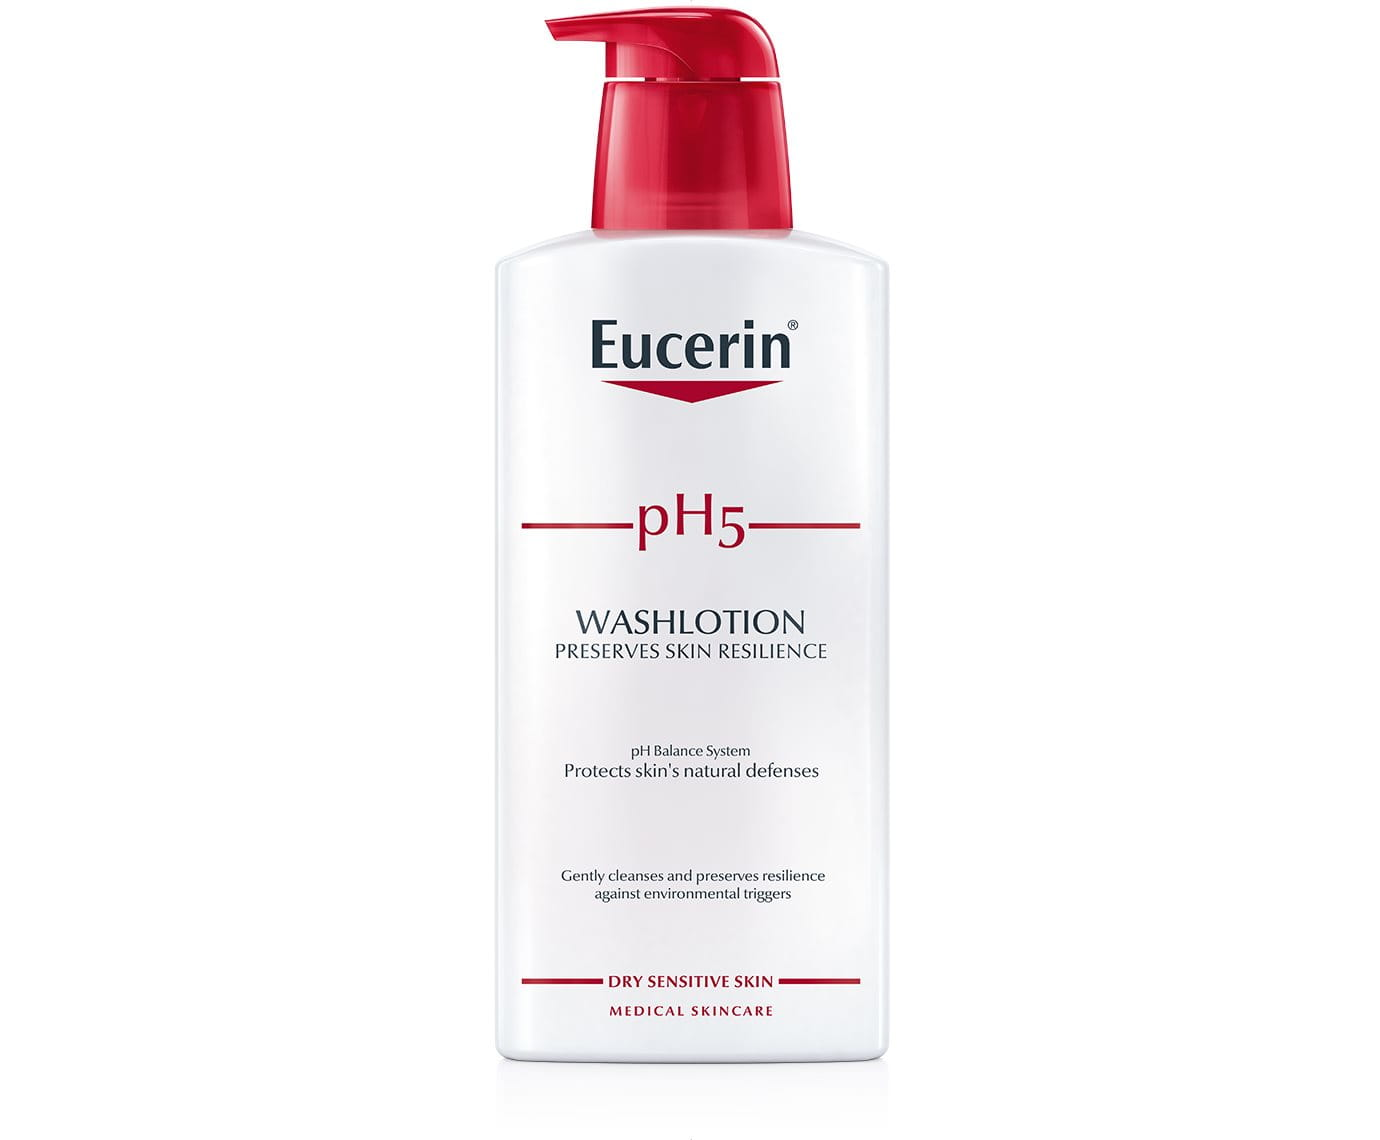 Ph5 Washlotion Cleanser For Dry Sensitive Skin Eucerin